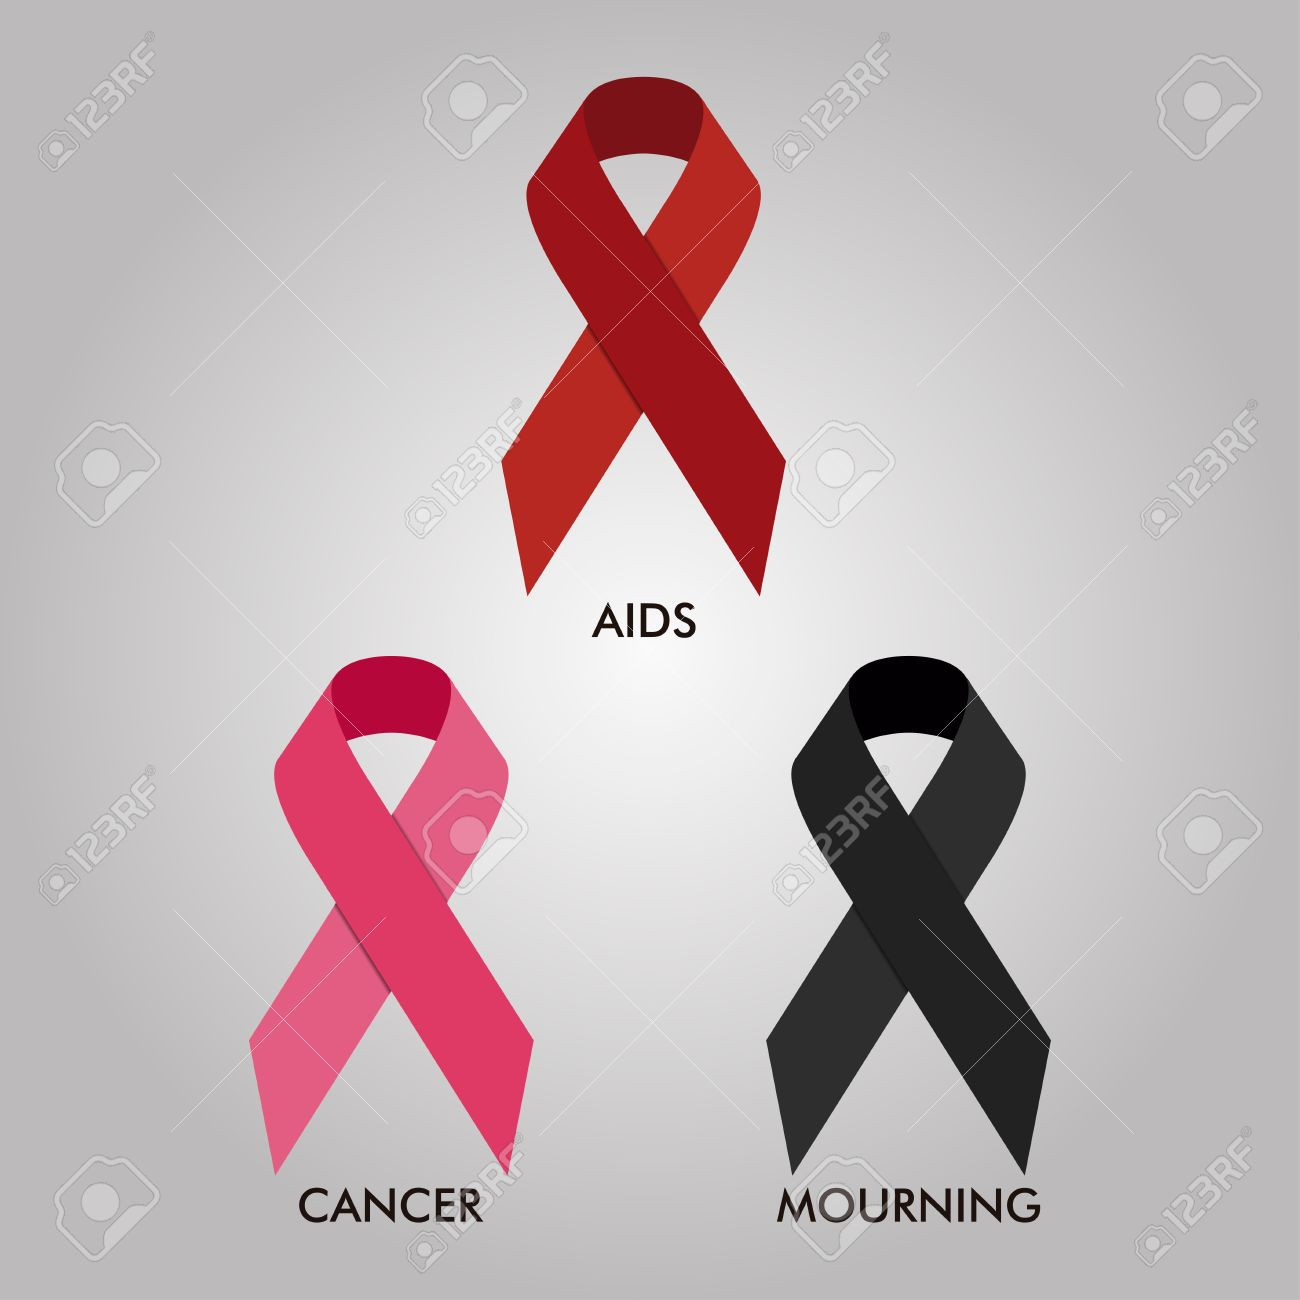 Image result for aids and cancer